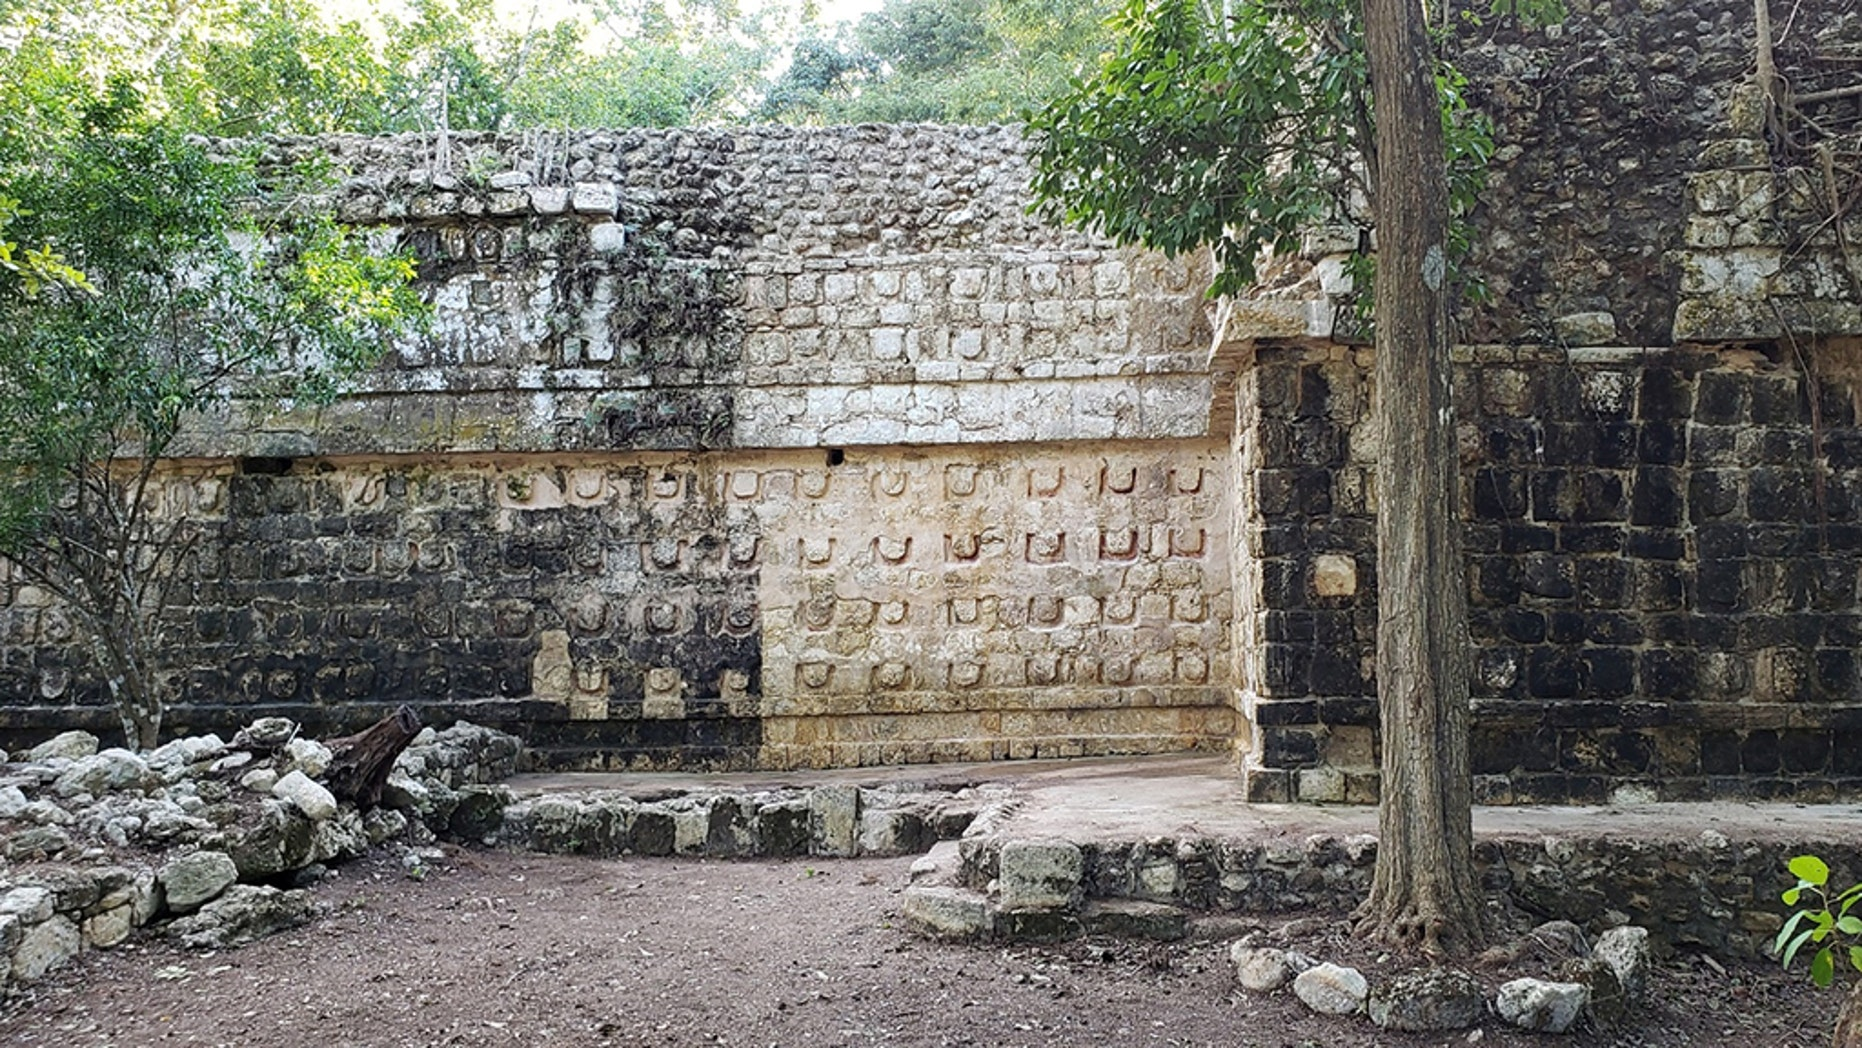 Westlake Legal Group Kuluba-1-Reuters Ancient Mayan palace lost for 1,000 years and used by 'elites' uncovered near Cancun The Sun Sean Keach fox-news/columns/digging-history fnc/science fnc Digital Technology and Science Editor article 772c80c7-b5ff-52e0-8083-5e38039b7c47